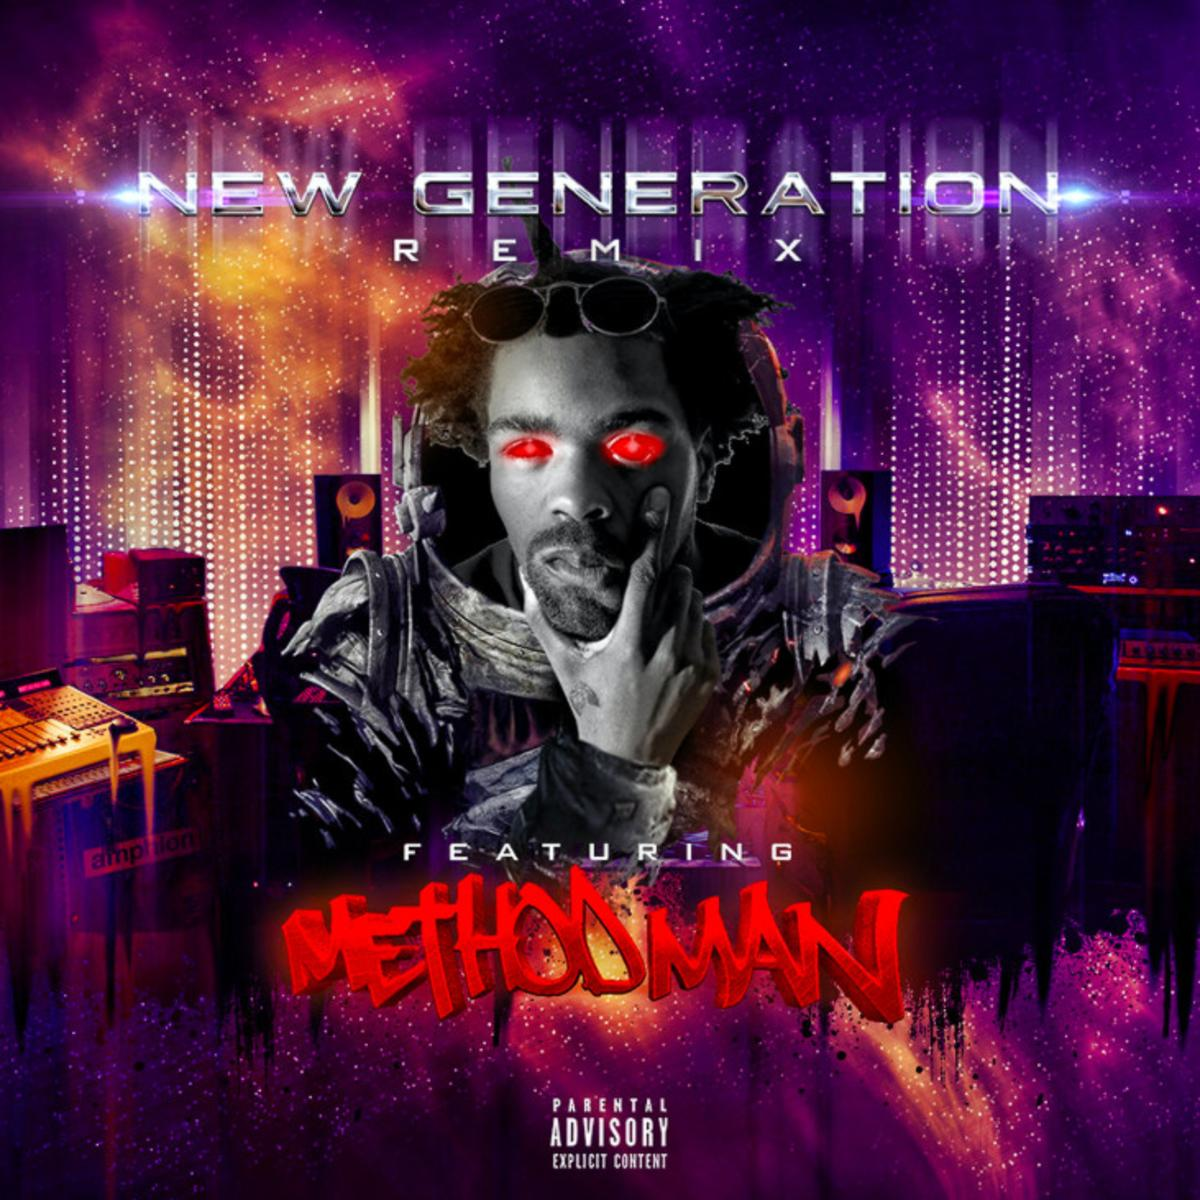 """New Generation Remix Ft. Method Man"""